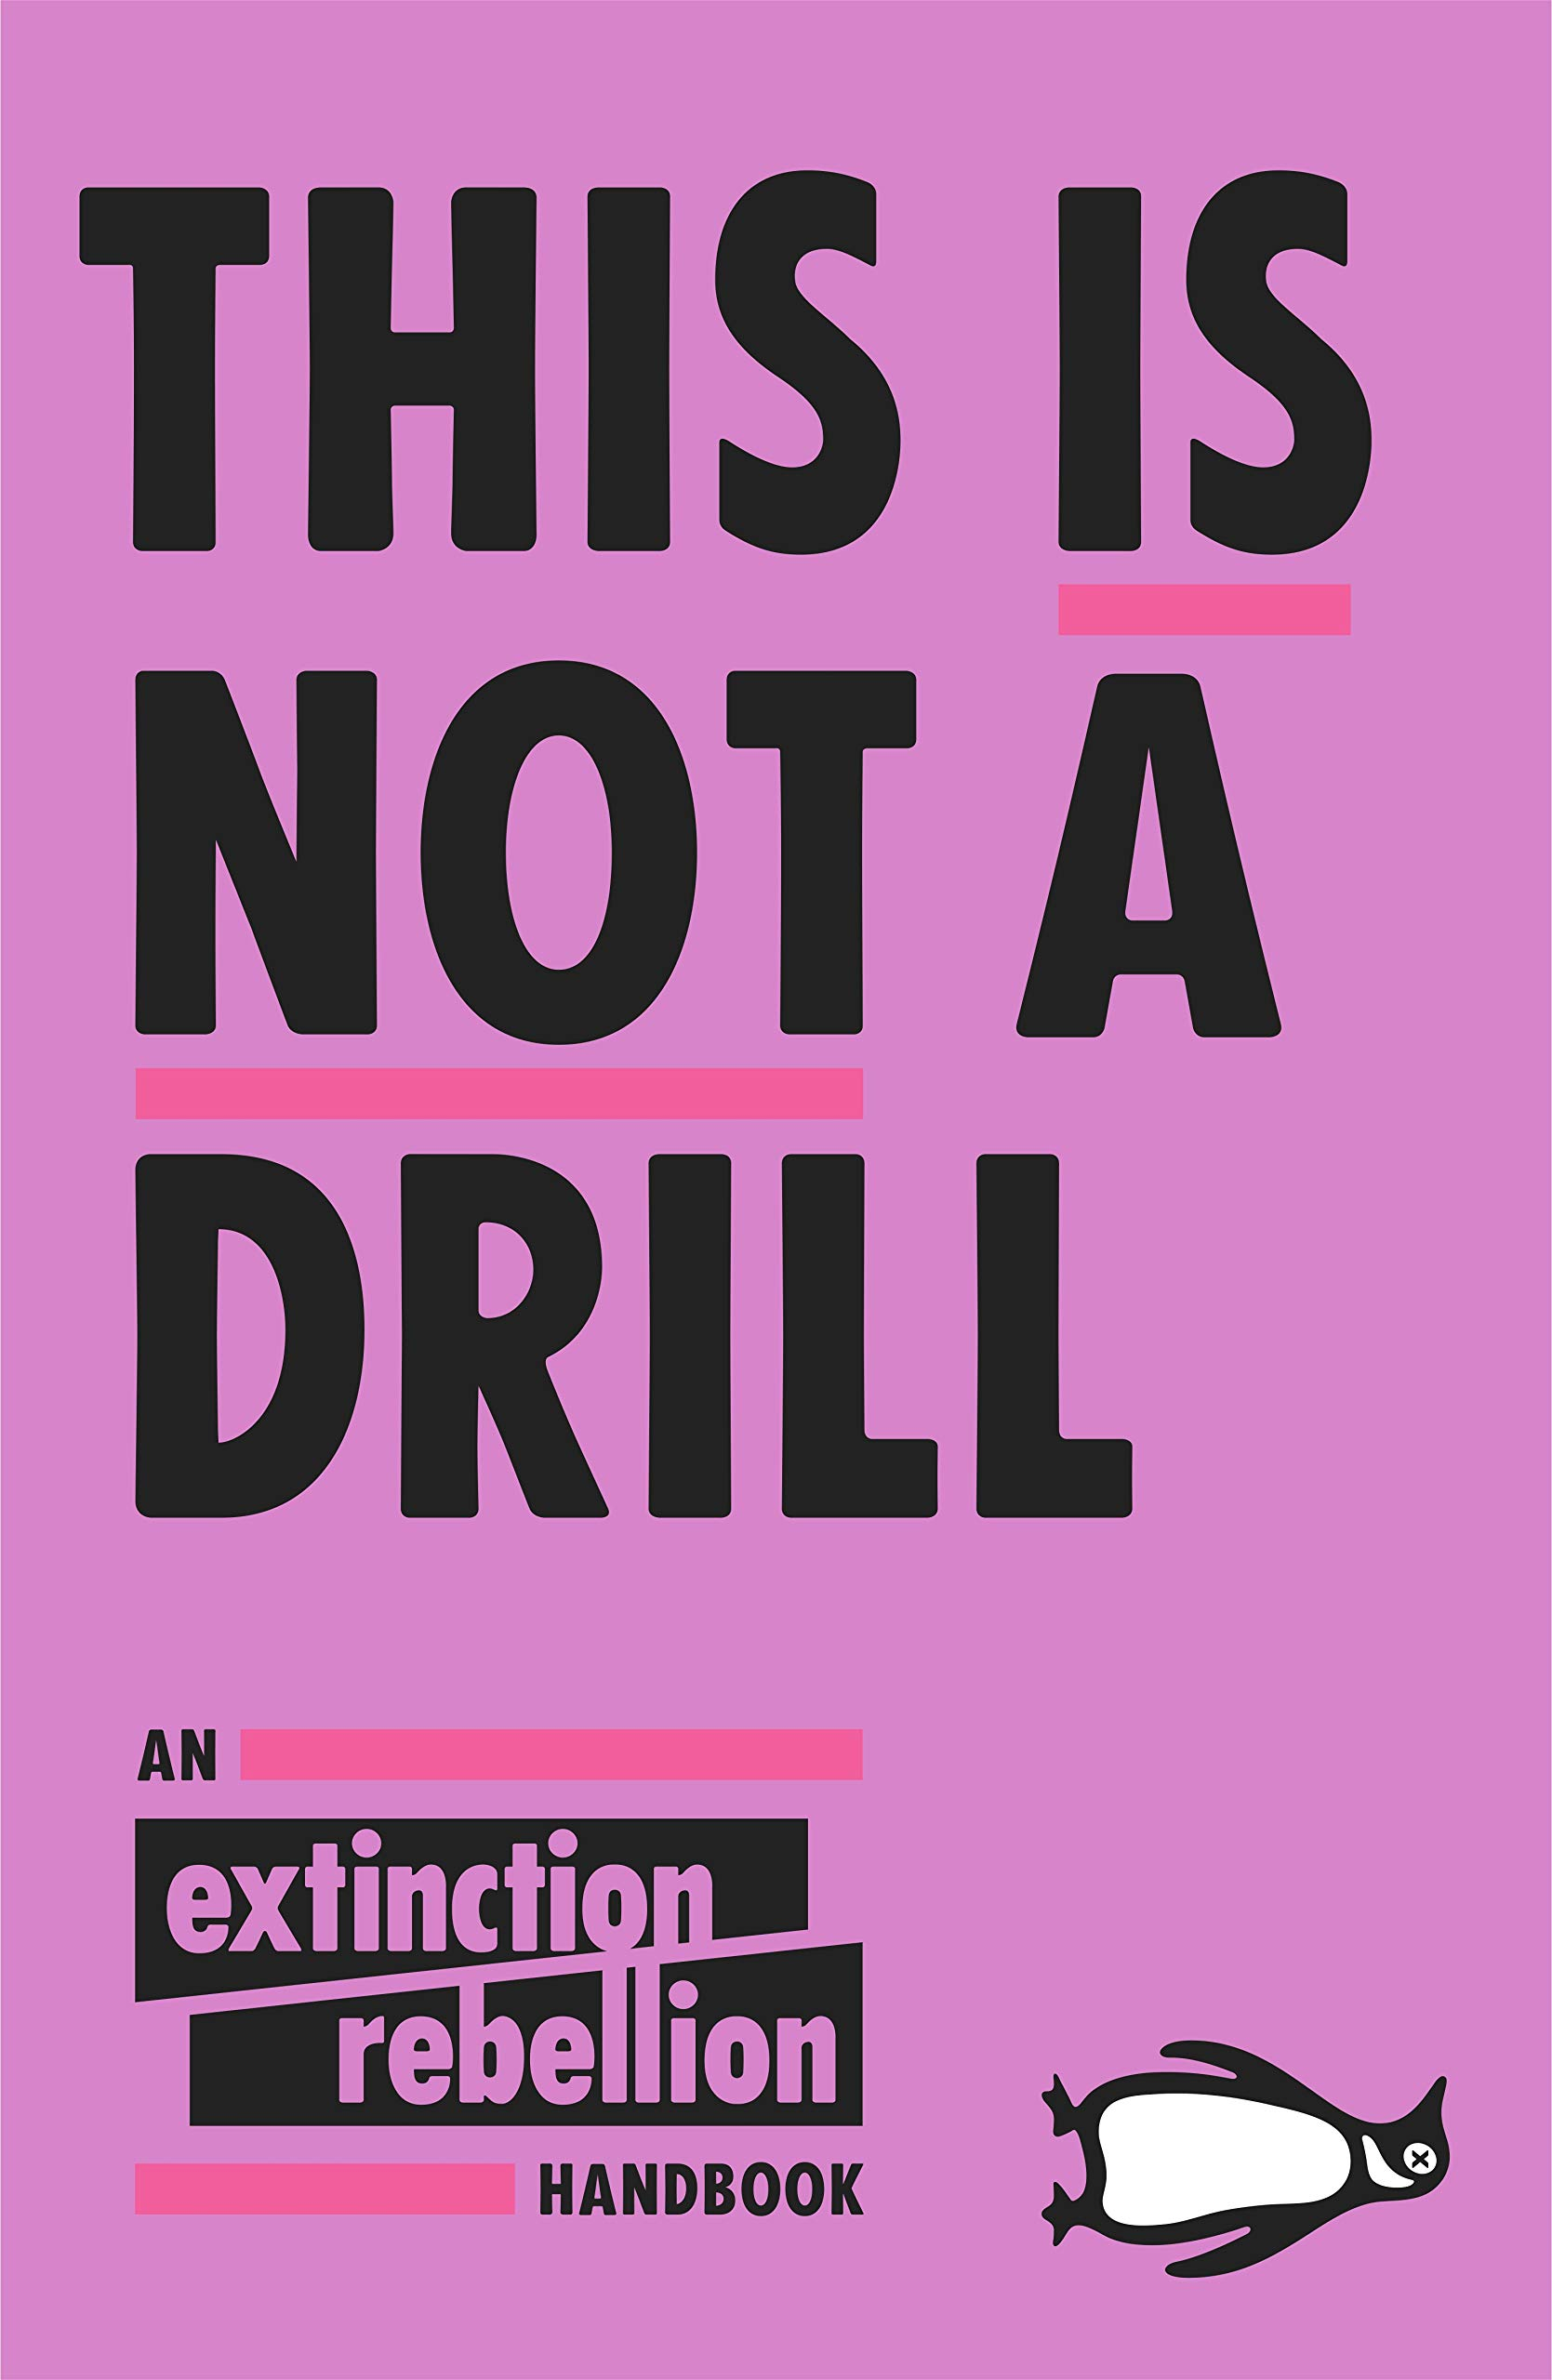 This Is Not A Drill: An Extinction Rebellion Handbook: Amazon.co.uk: Extinction  Rebellion: 9780141991443: Books